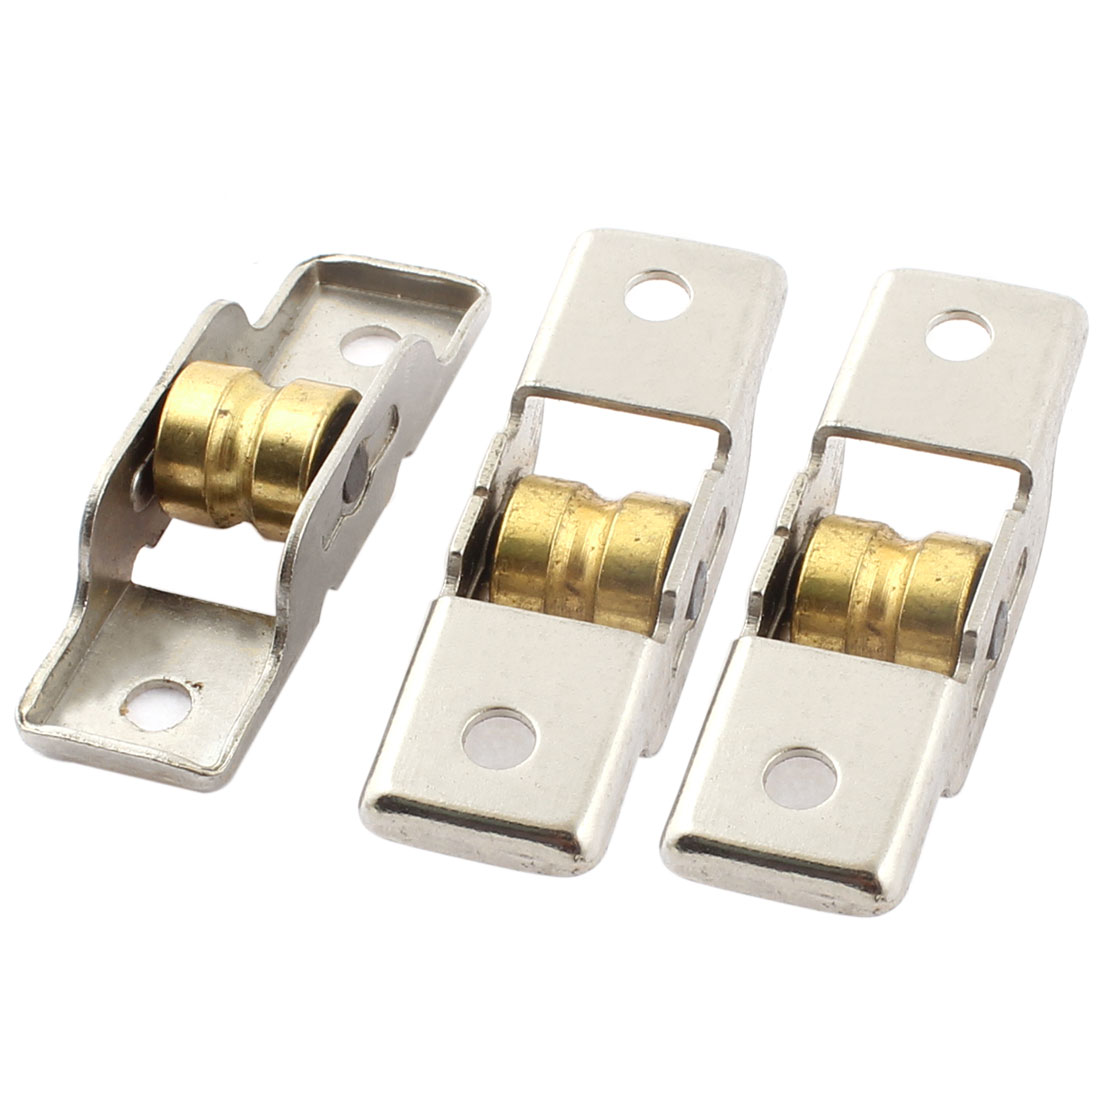 Cabinet Door Sliding Wheel Window Sash Pulley 11.5mm Single Roller 3pcs